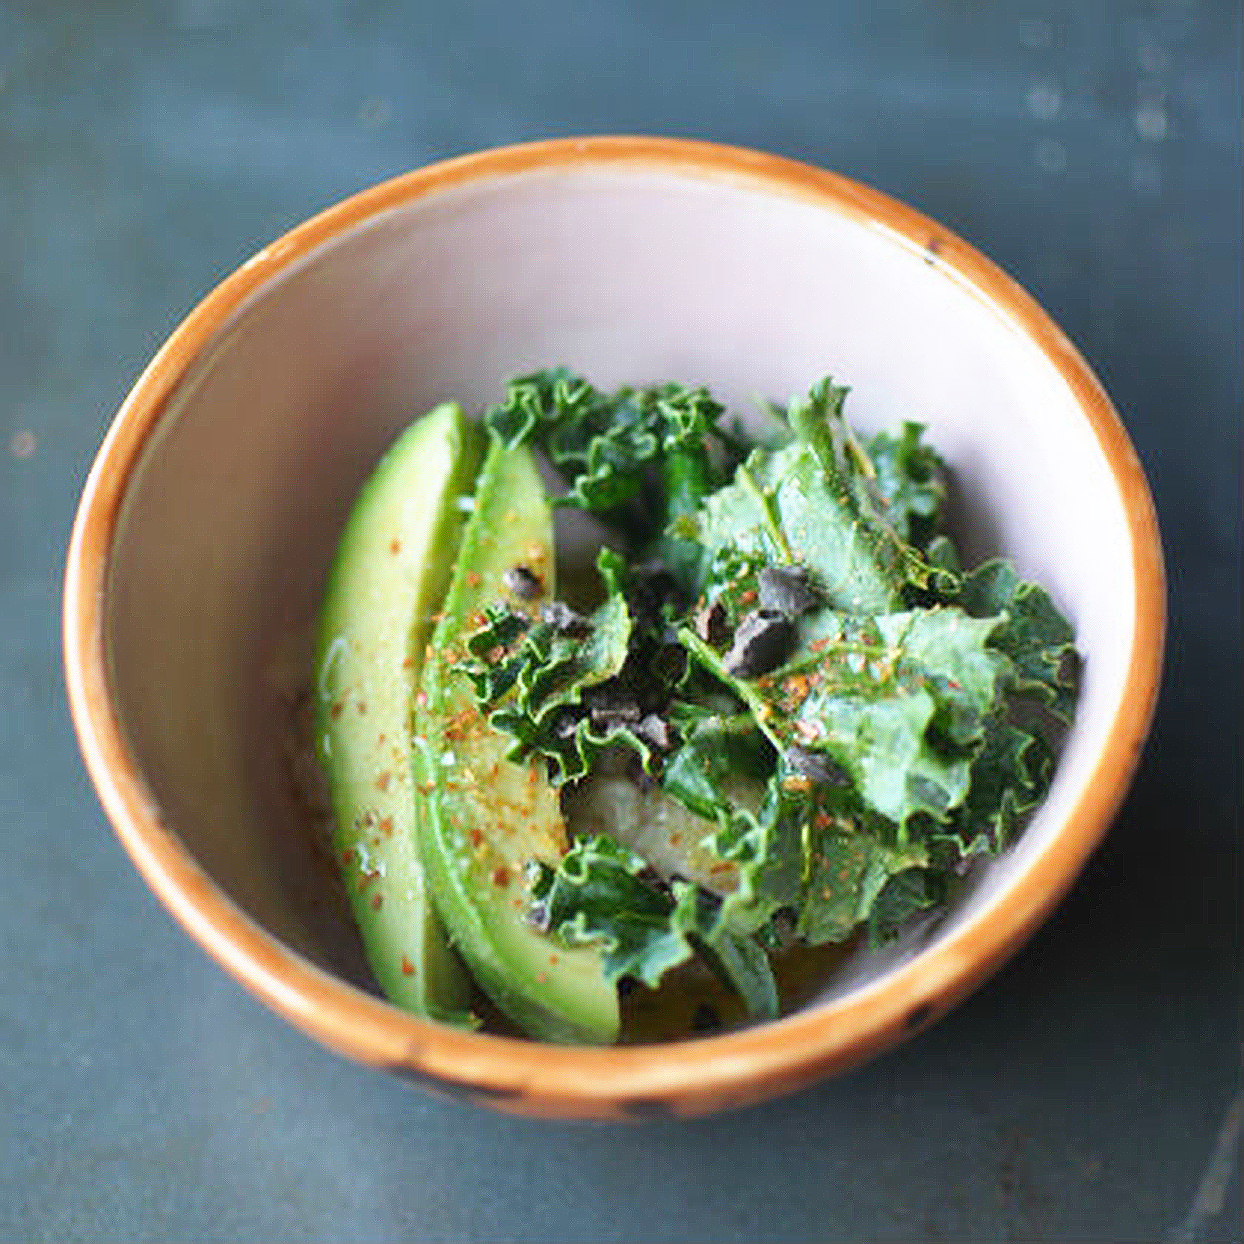 Oatmeal with Avocado and Kale